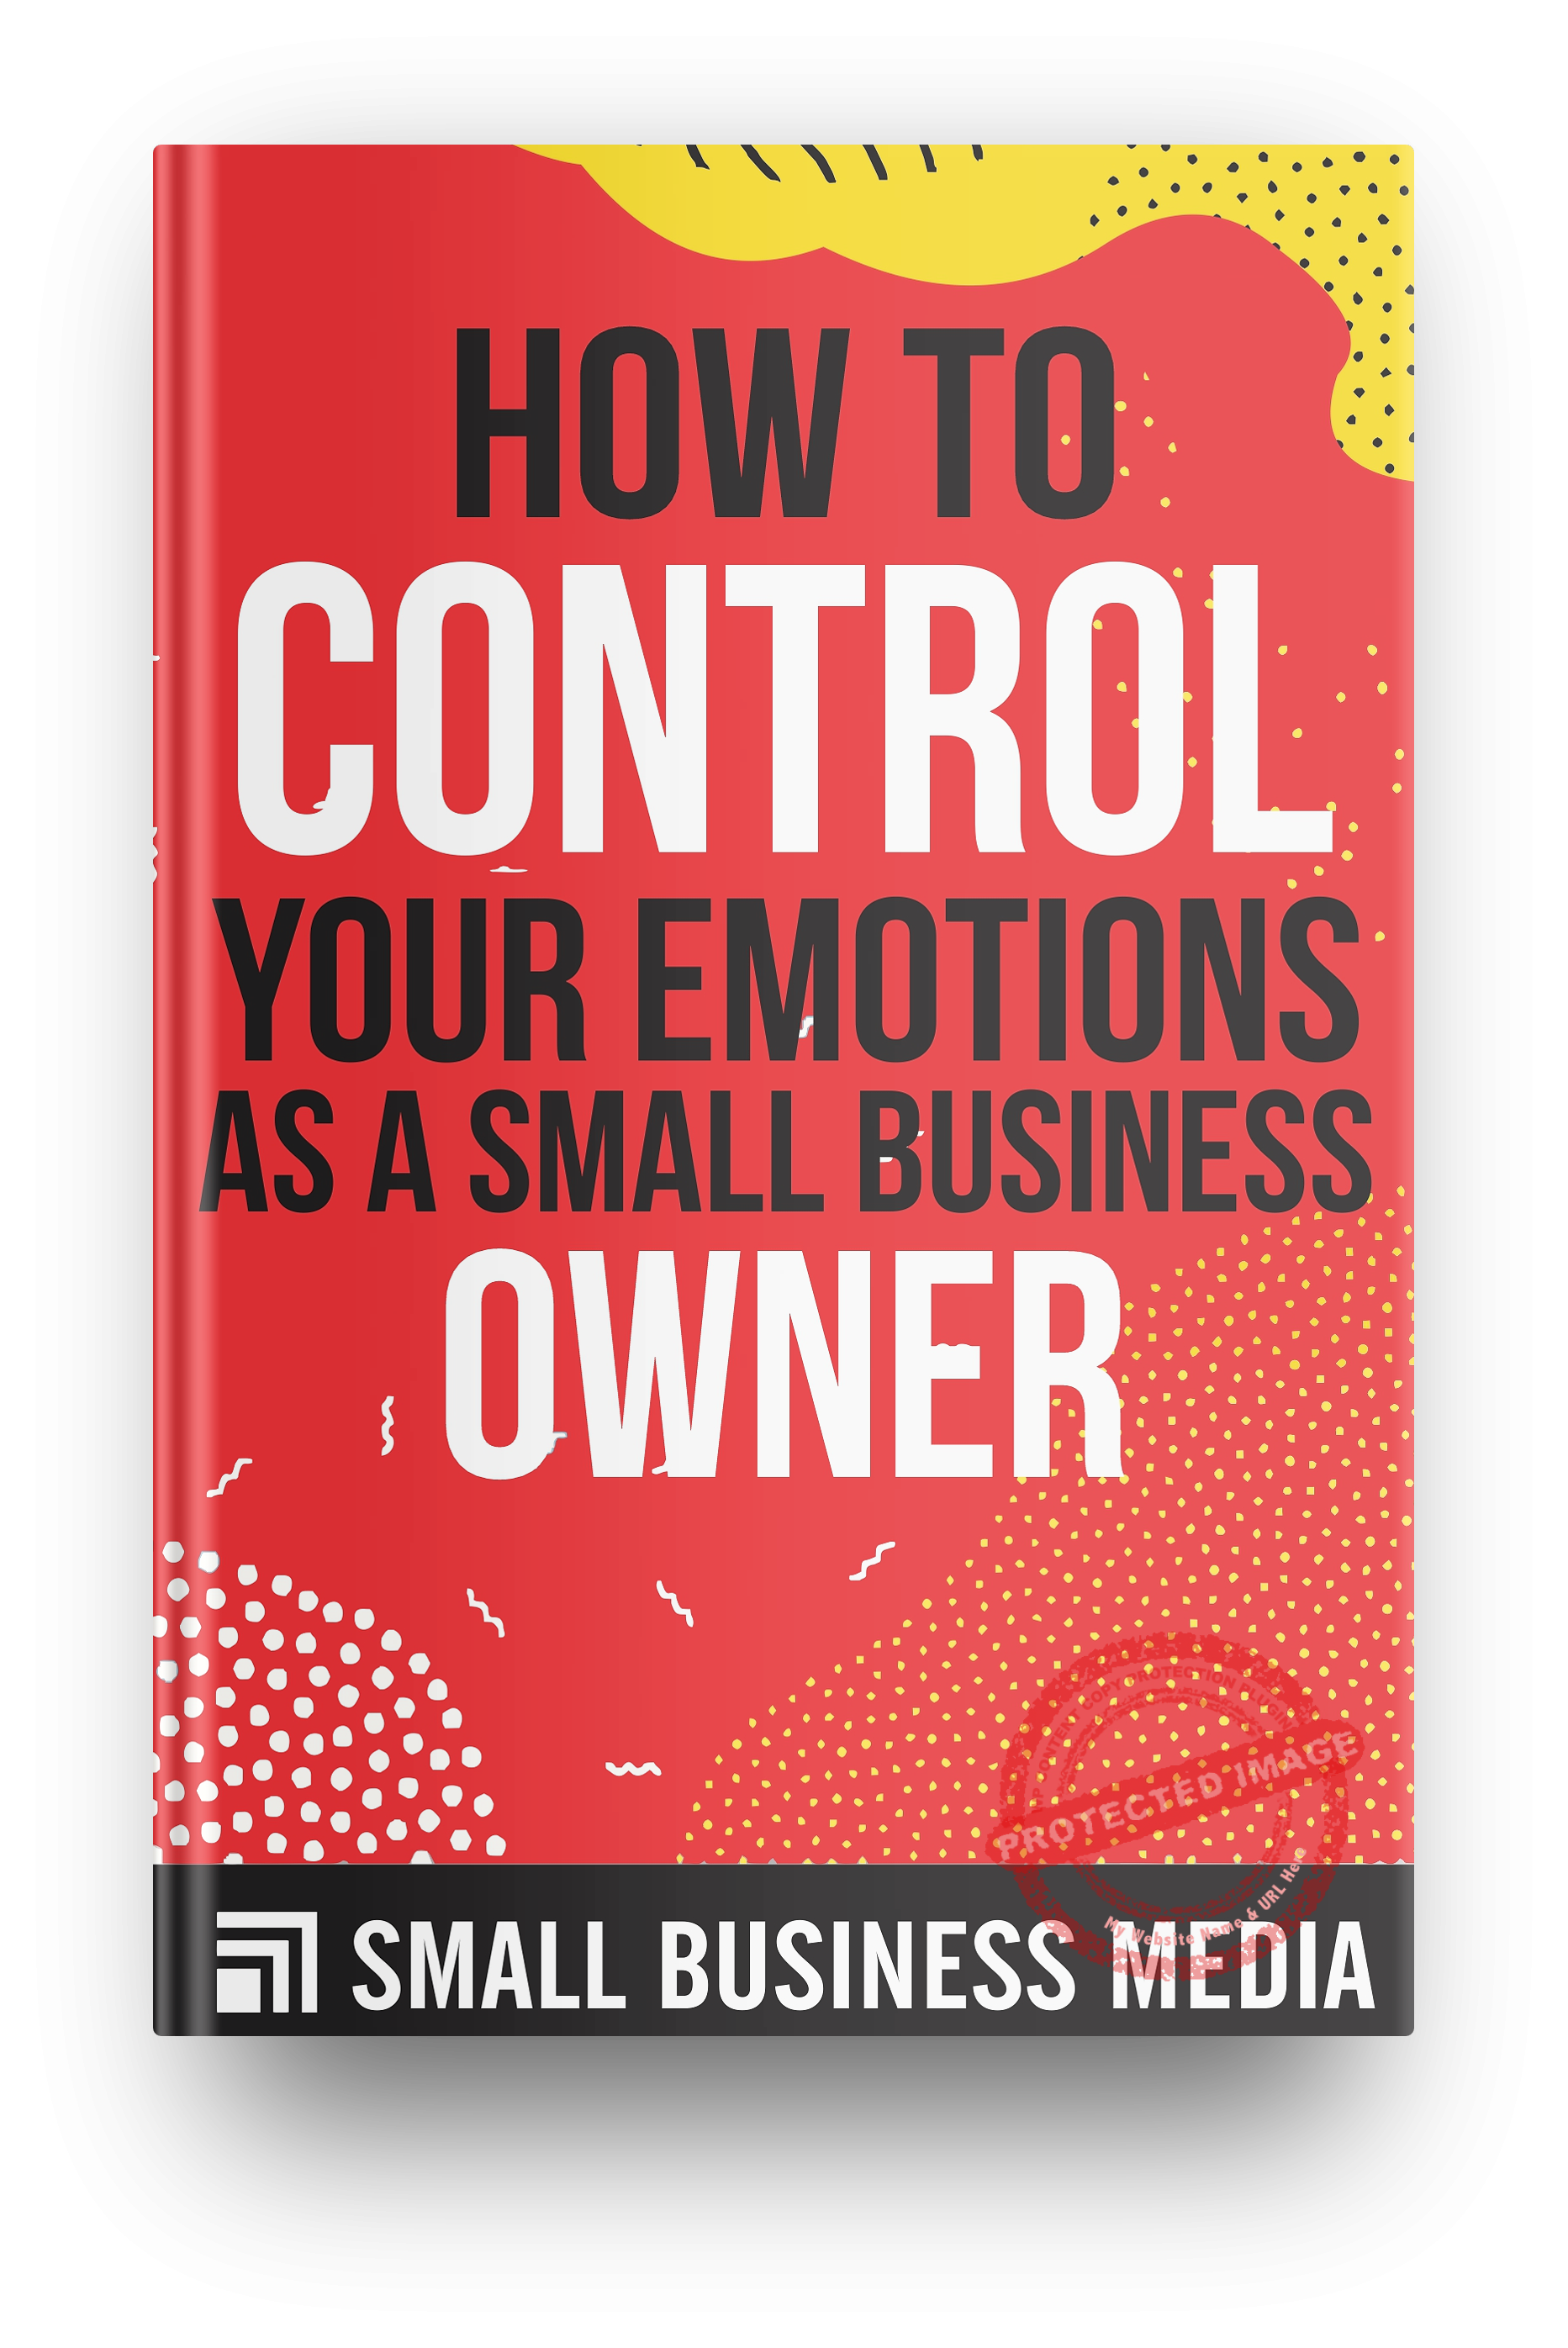 How to Control Your Emotions As a Small Business Owner